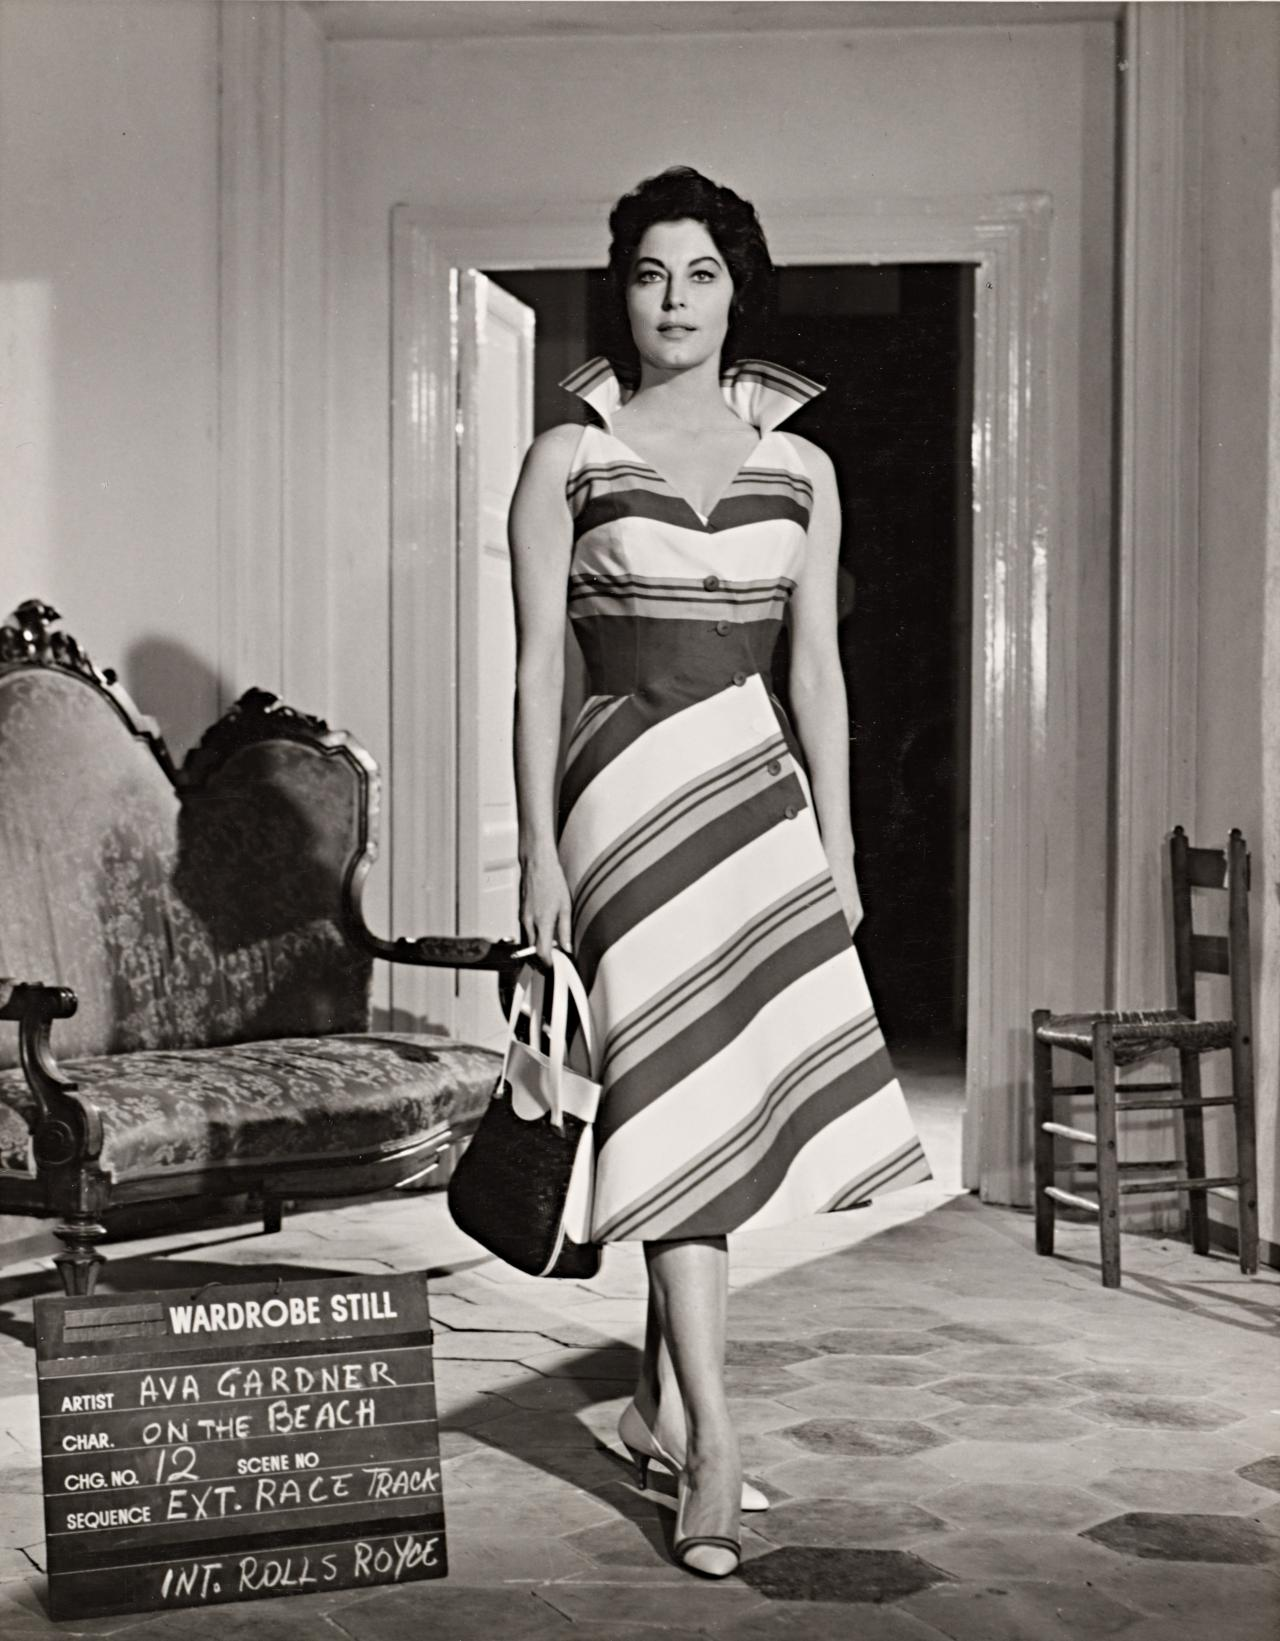 No title (Ava Gardner in wardrobe still for On The Beach: Race track and Rolls Royce)